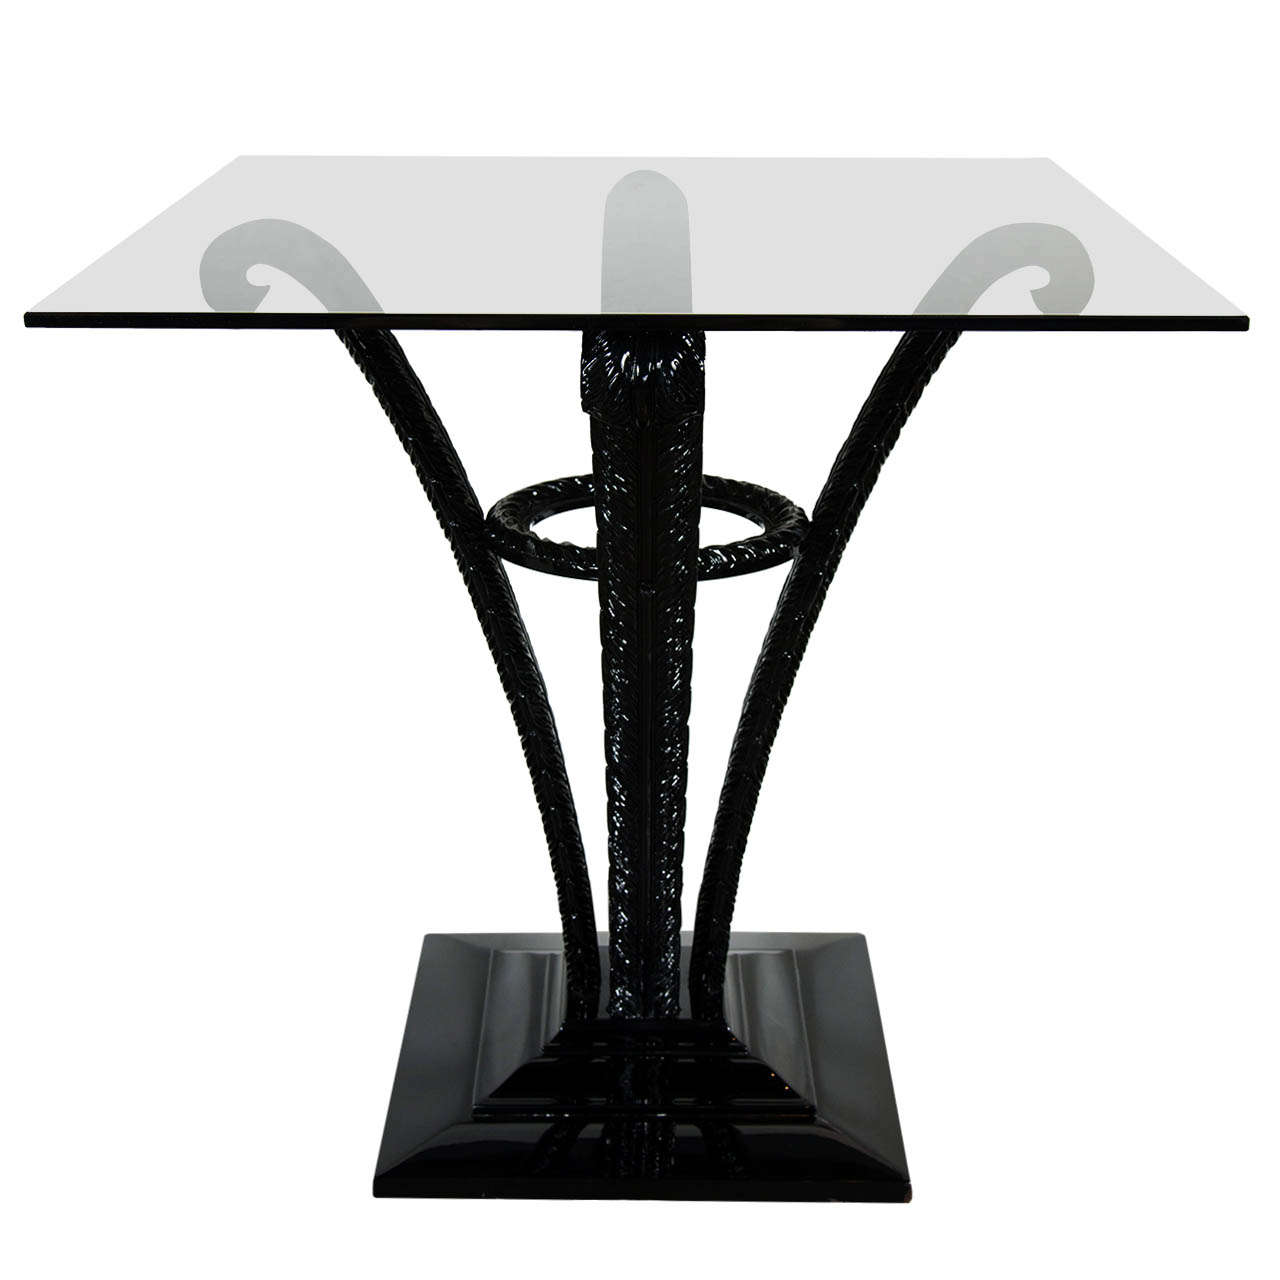 Elegant Art Deco Plume Table by Grosfeld House in Black Lacquer 1